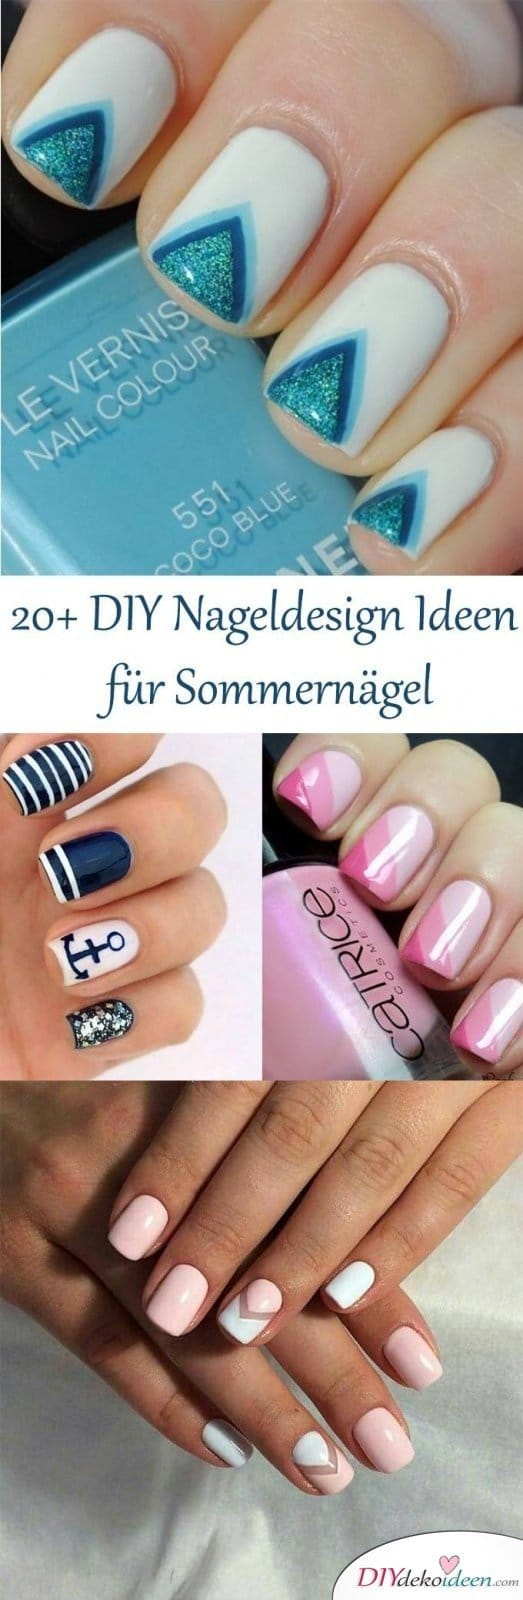 20 DIY Nageldesign Ideen Sommernägel - Trends 2017